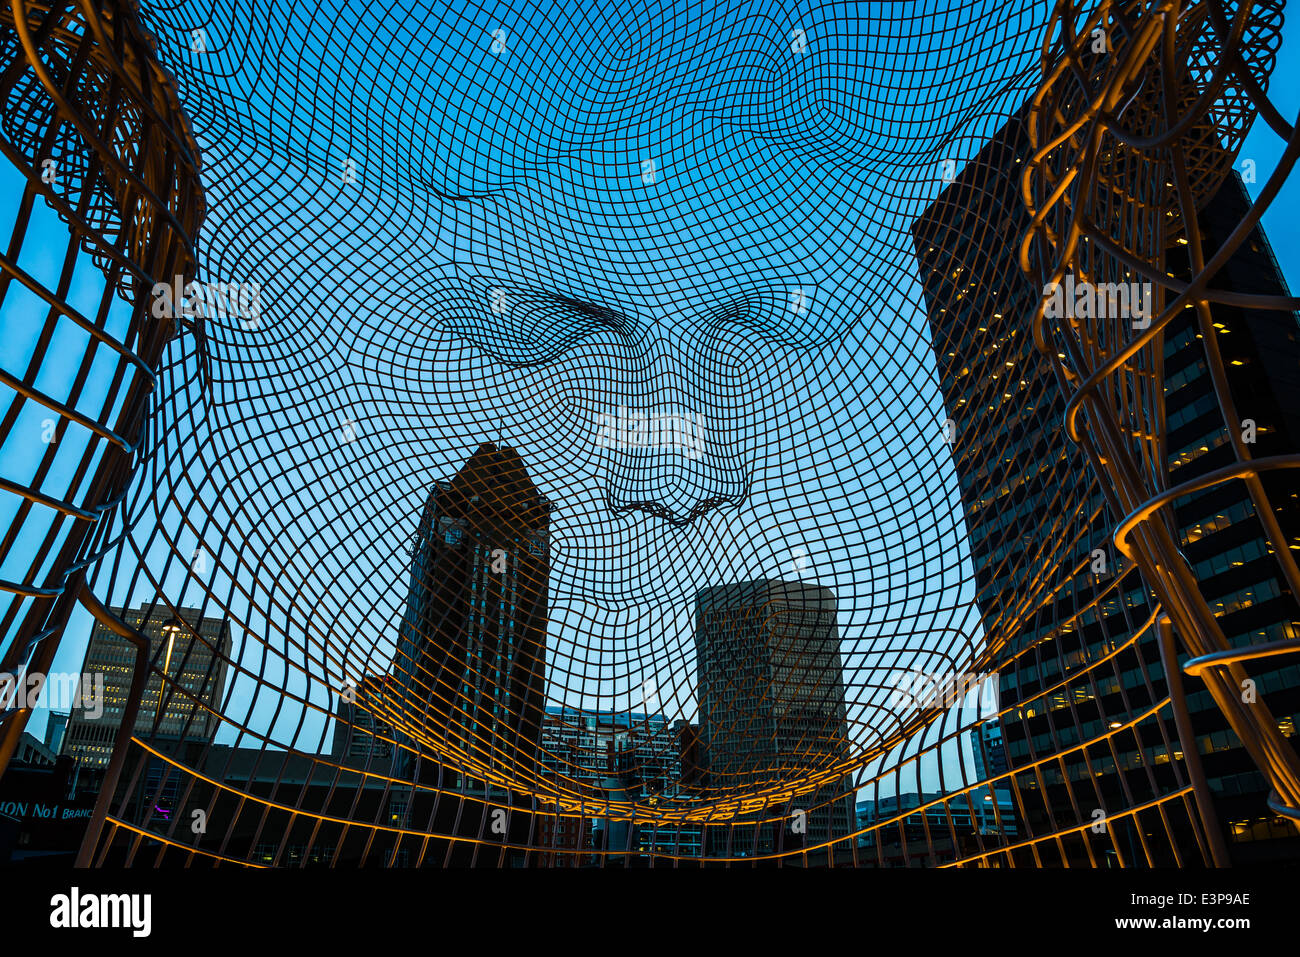 Evening view from inside the sculpture titled 'Wonderland' by Jaume Plensa. The Bow Tower, Calgary, Alberta, - Stock Image